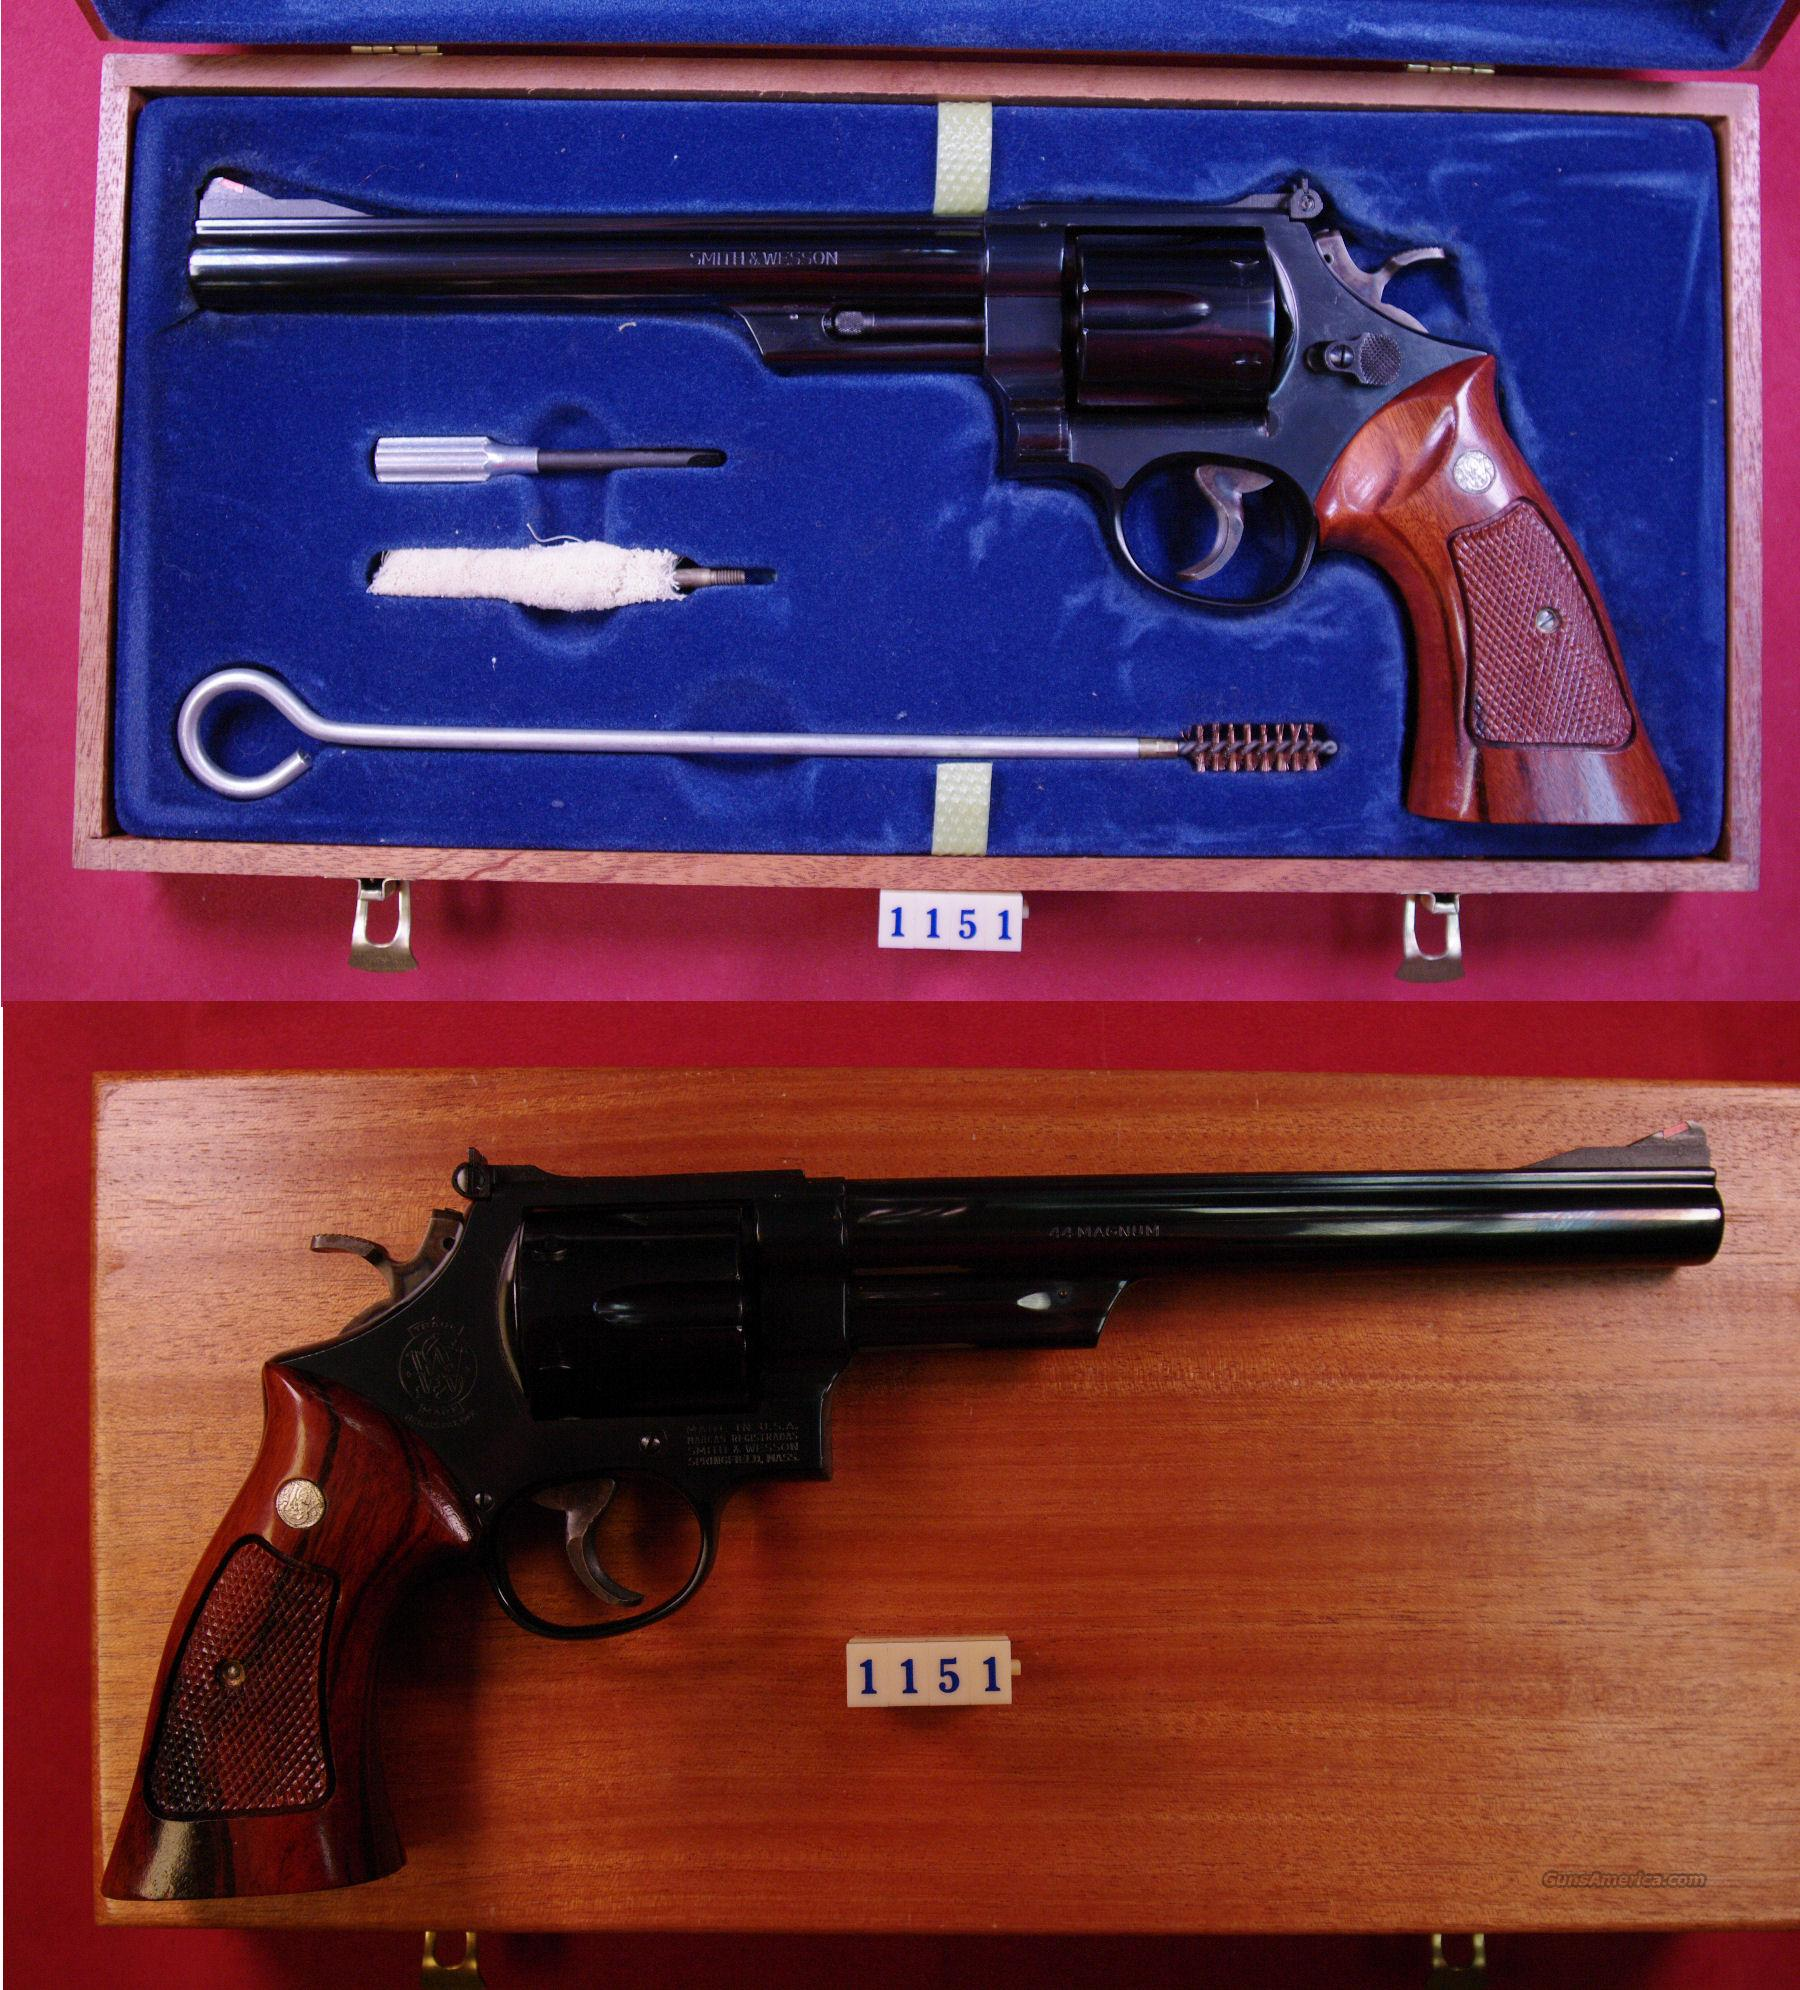 Smith & Wesson M29-2 44 Mag  Guns > Pistols > Smith & Wesson Revolvers > Full Frame Revolver